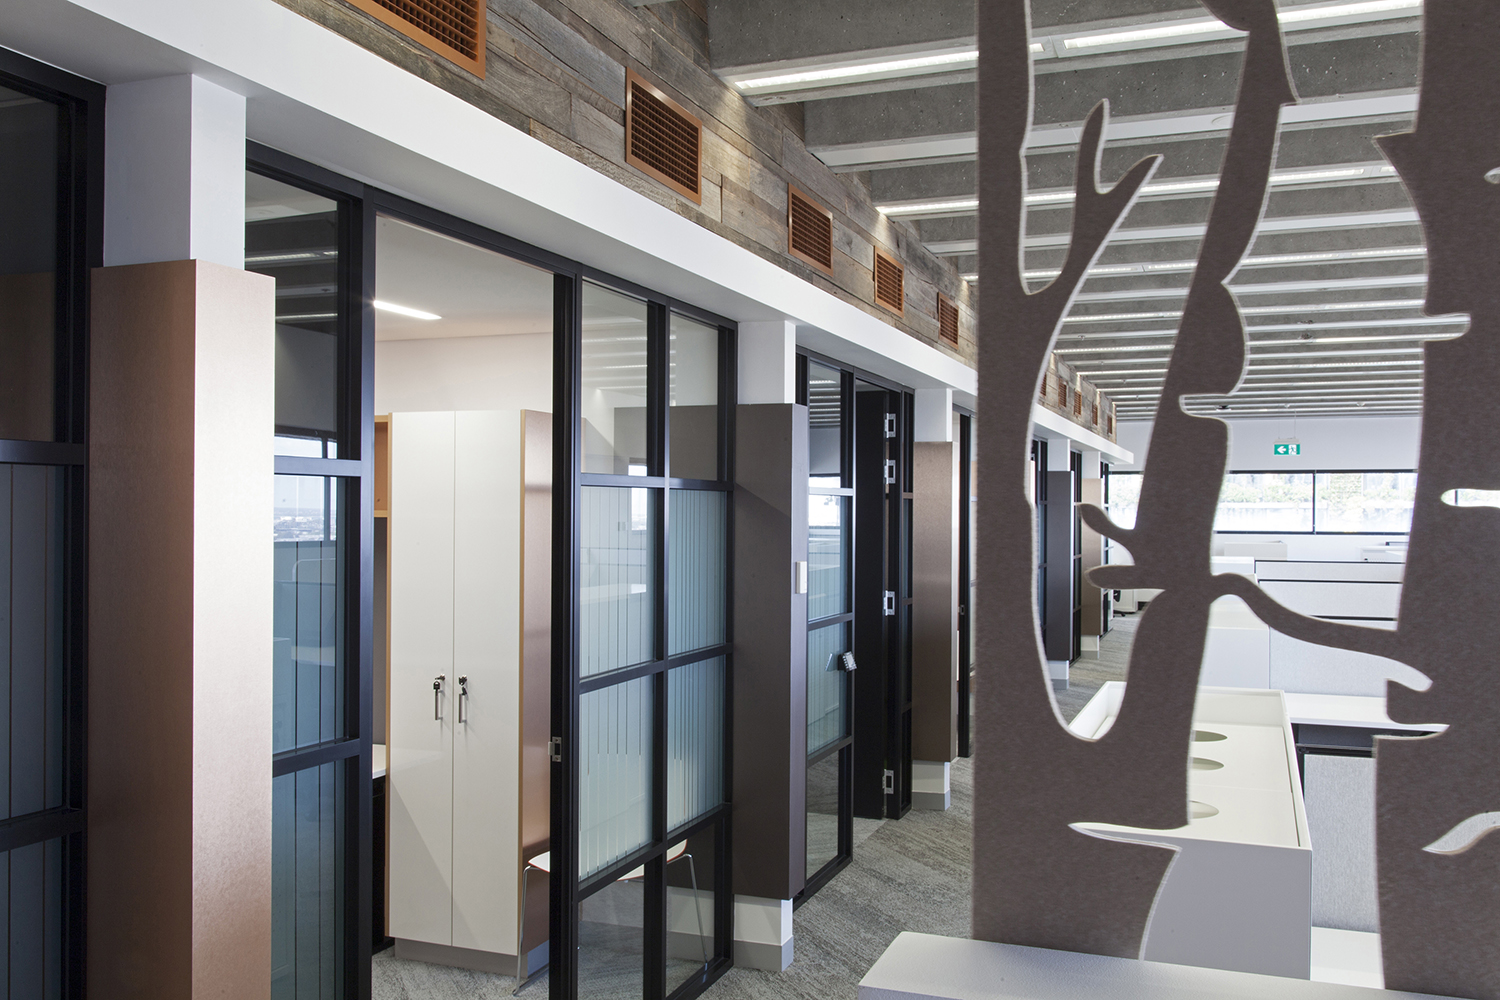 UTS Building 1 Levels 20 & 21 Office and Workplace Hallway and Meeting Rooms Interior Design – Gardner Wetherill GW 4